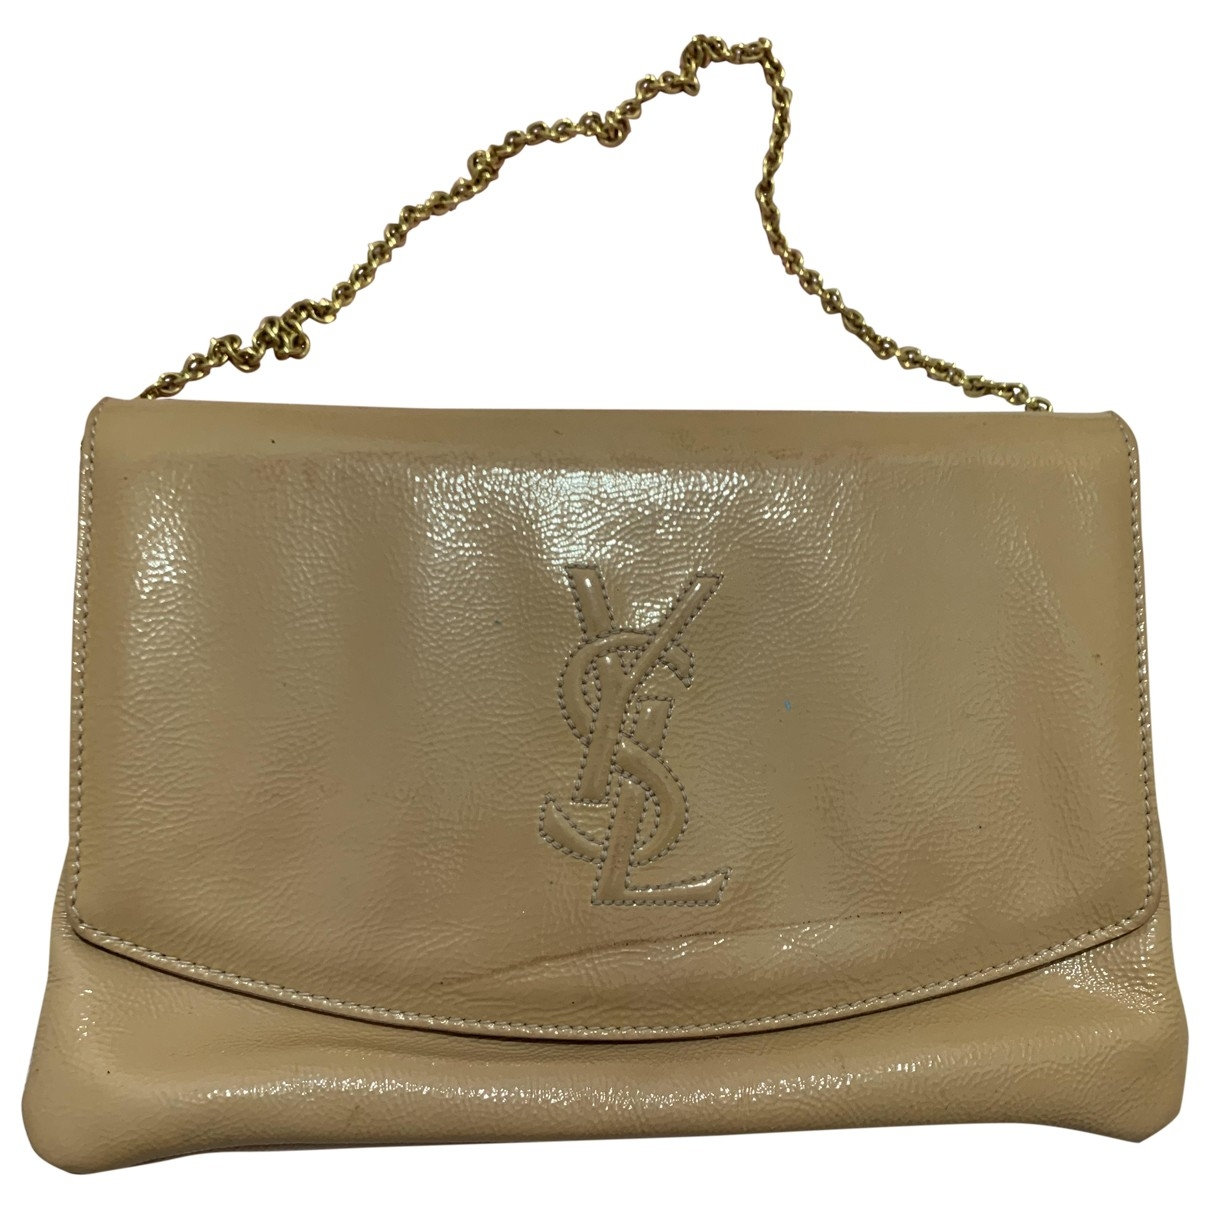 Yves Saint Laurent \N Pink Patent leather Clutch bag for Women \N